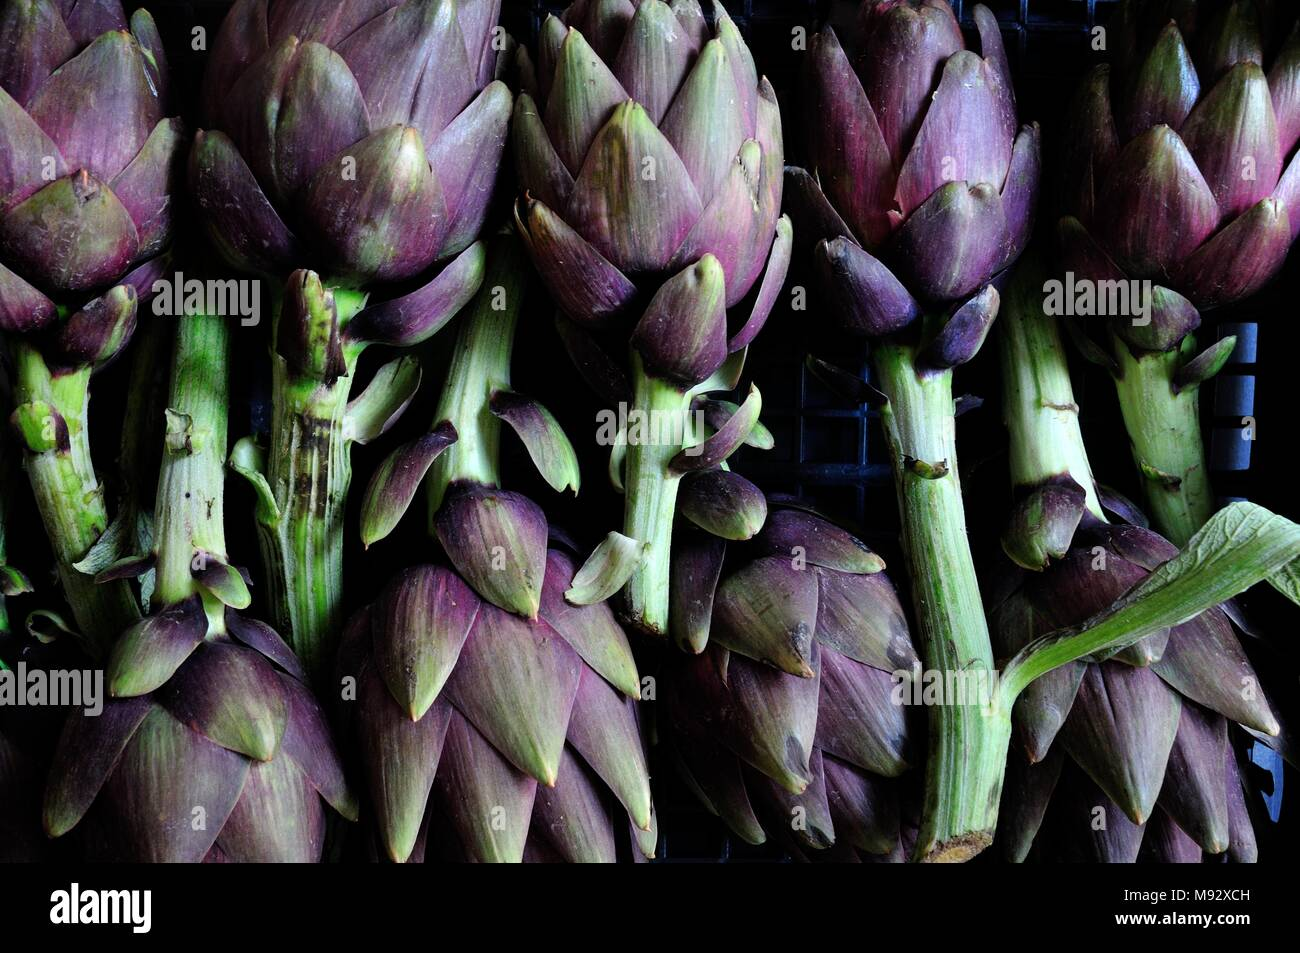 Nine green organic artichokes on gray background, top view. Healthy dieting and antioxidant vegetables. - Stock Image